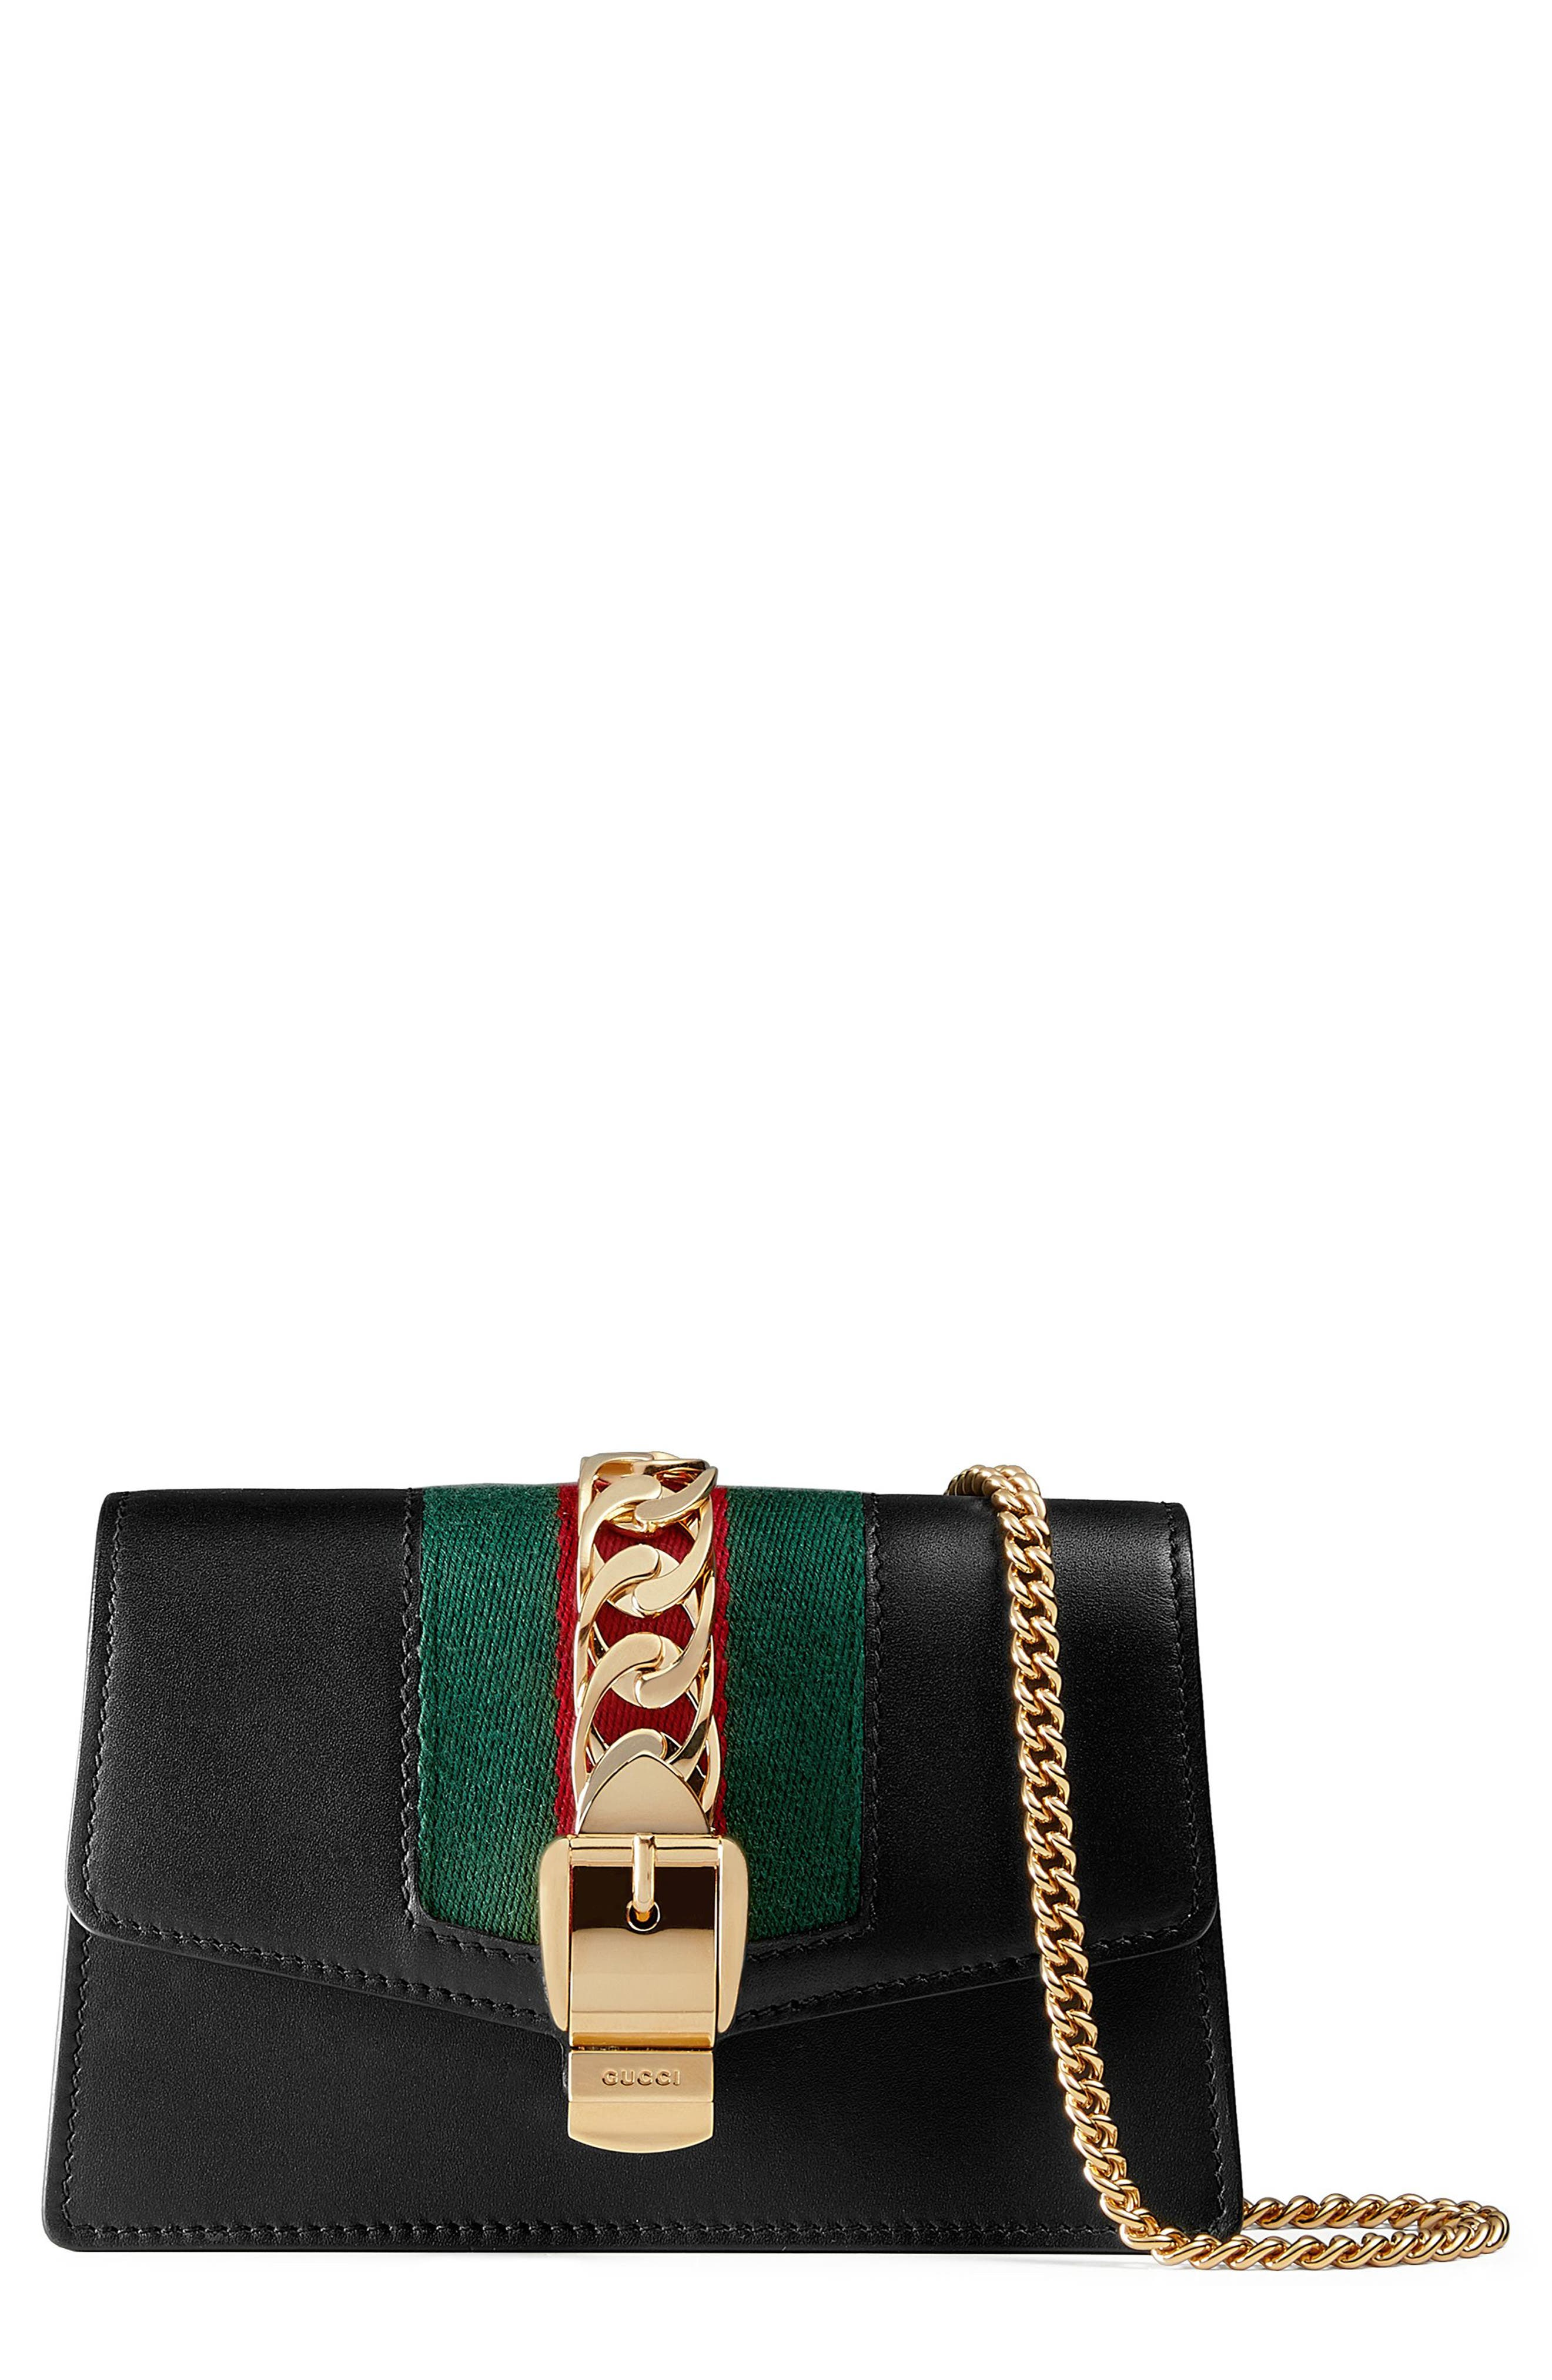 GUCCI, Super Mini Sylvie Chain Wallet, Main thumbnail 1, color, 001